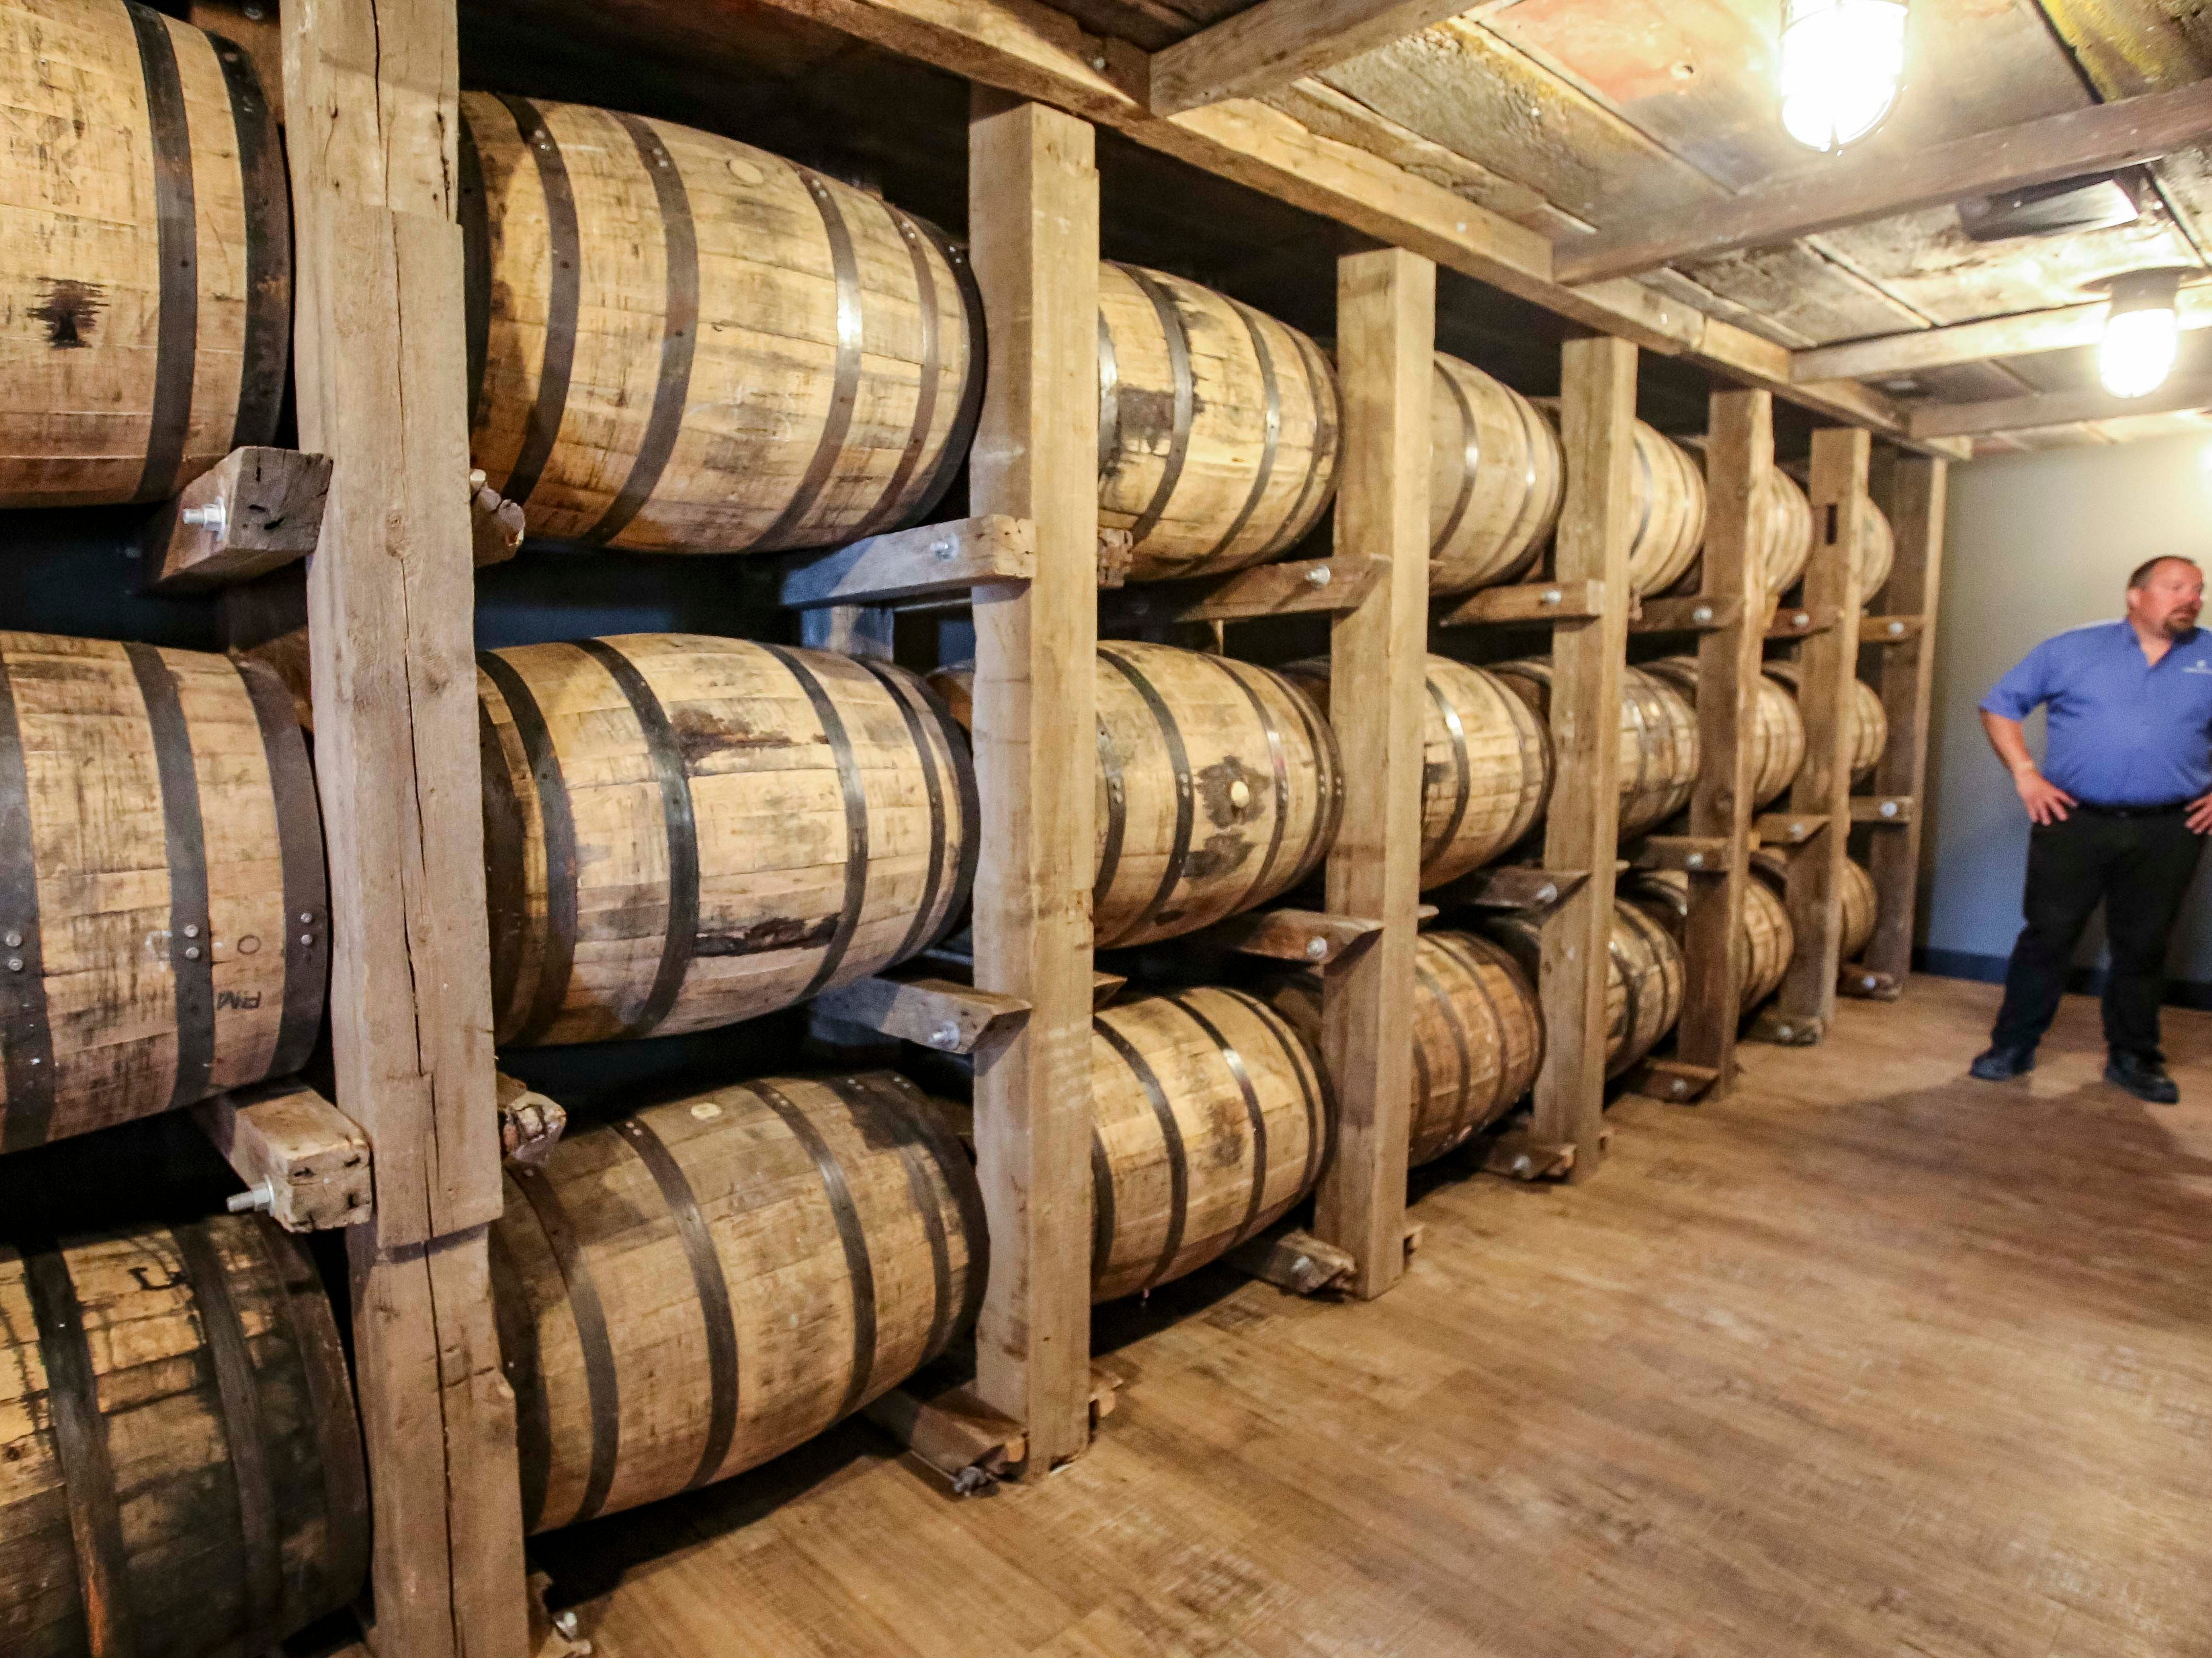 Display of aging barrels for Templeton Rye in Templeton, Iowa, shown here Monday, Aug. 6, 2018.